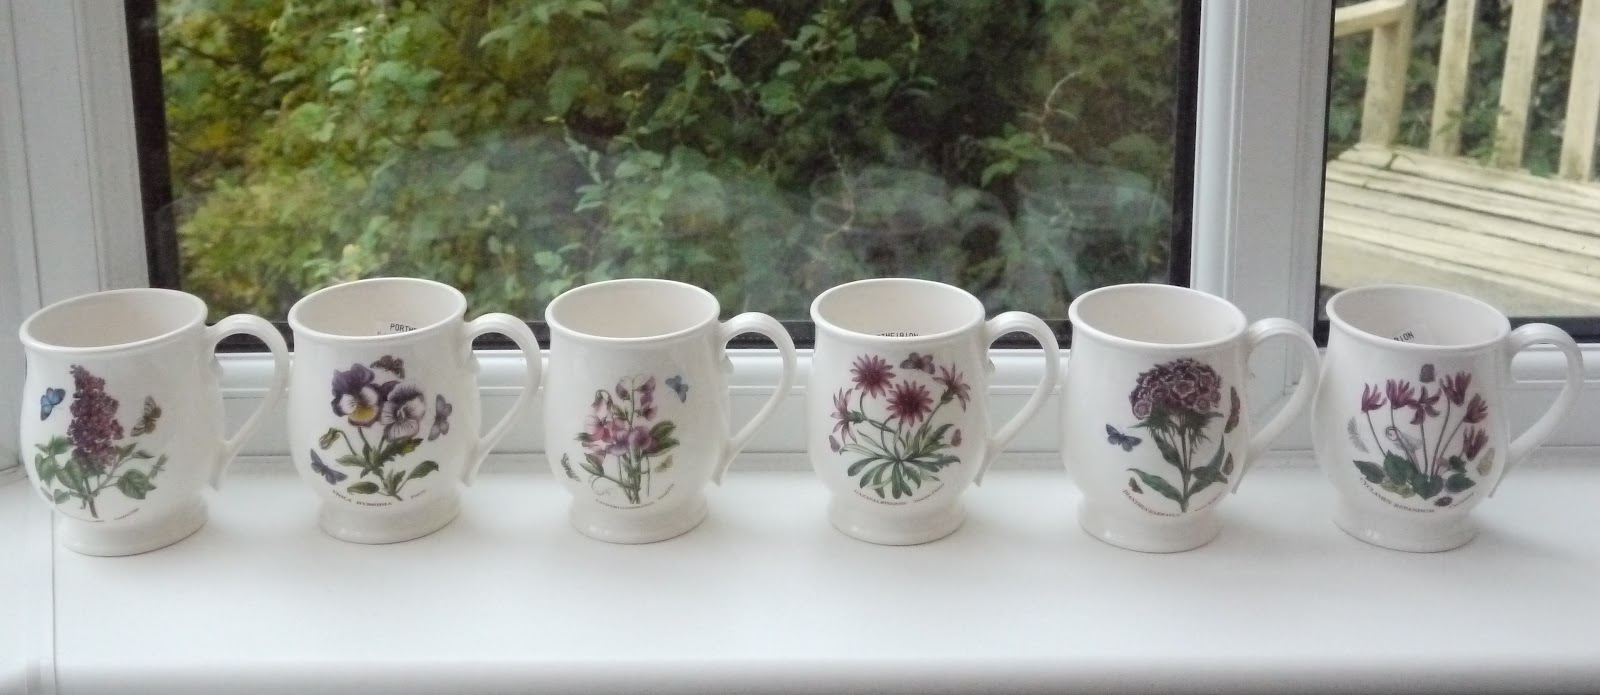 Kitch 39 N 39 Chic Portmeirion Botanic Garden Bristol Tankard Mugs X6 Sold Out